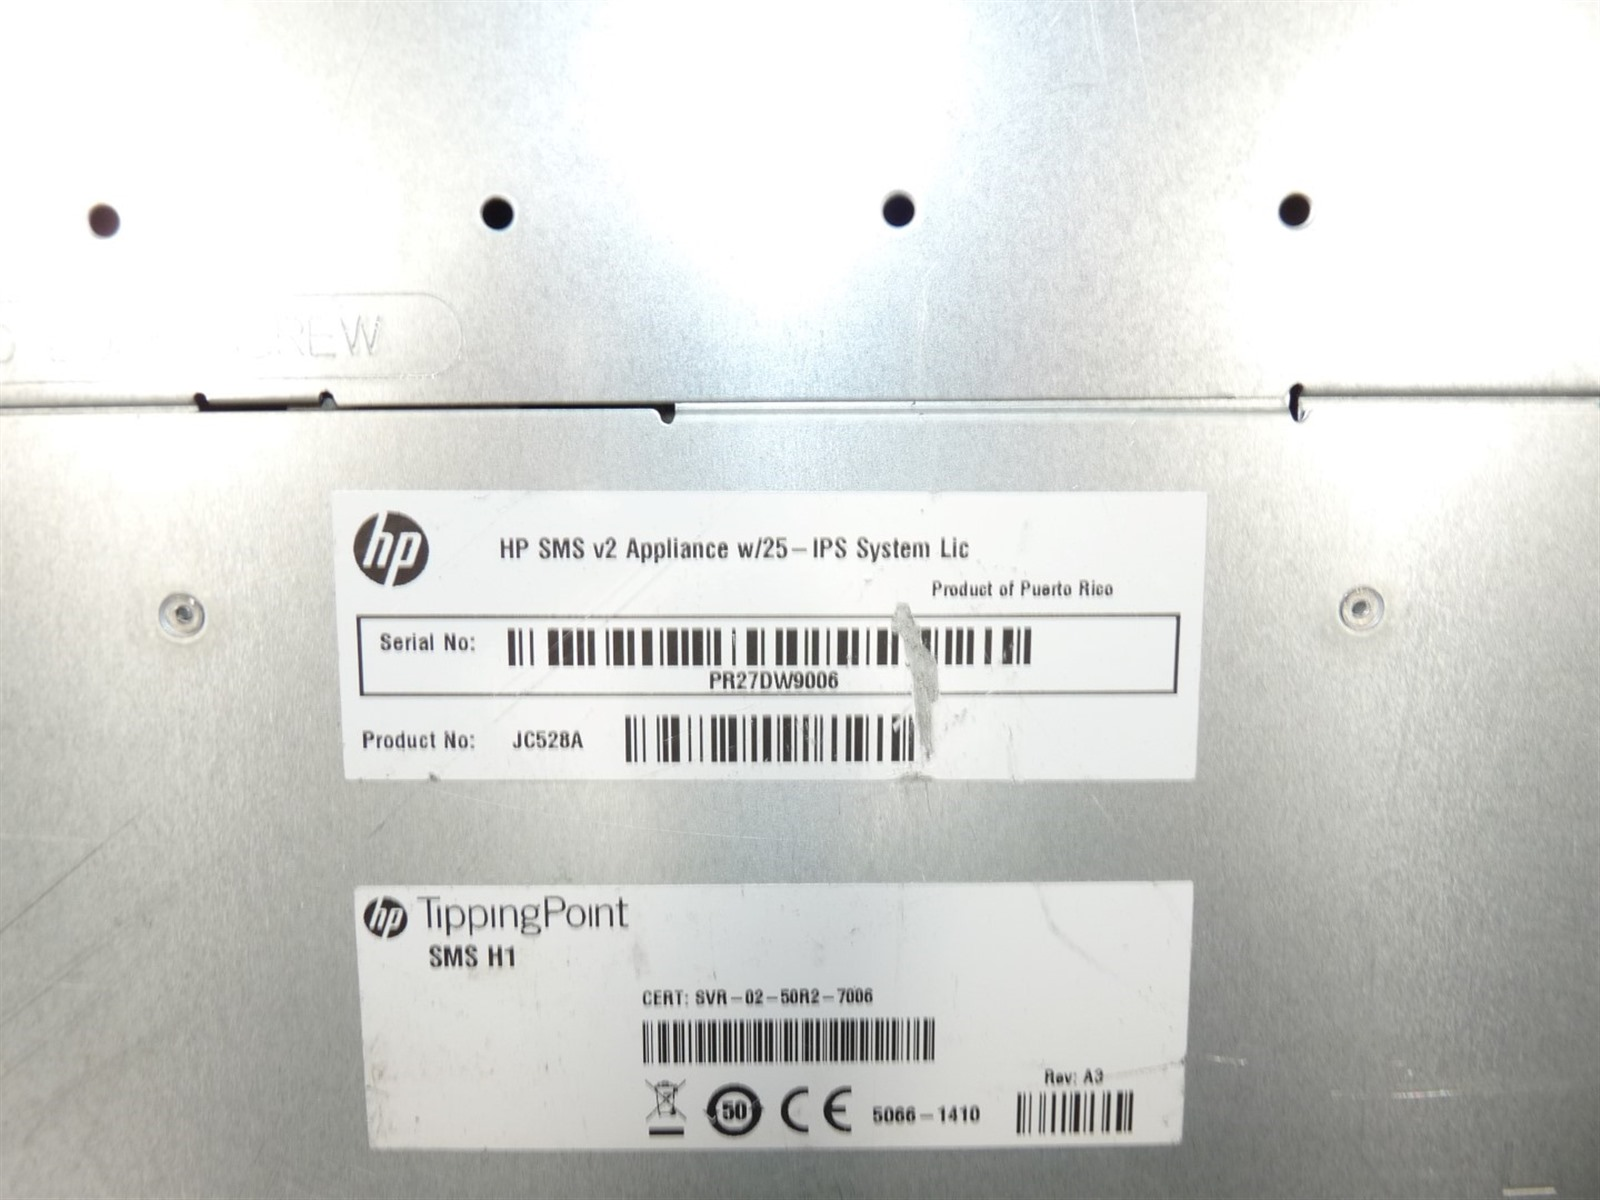 Details about HP TippingPoint SMS H1 v2 JC528A 1U Server Xeon(E5620  QC)2 4GHz 6GB 0HD Boots